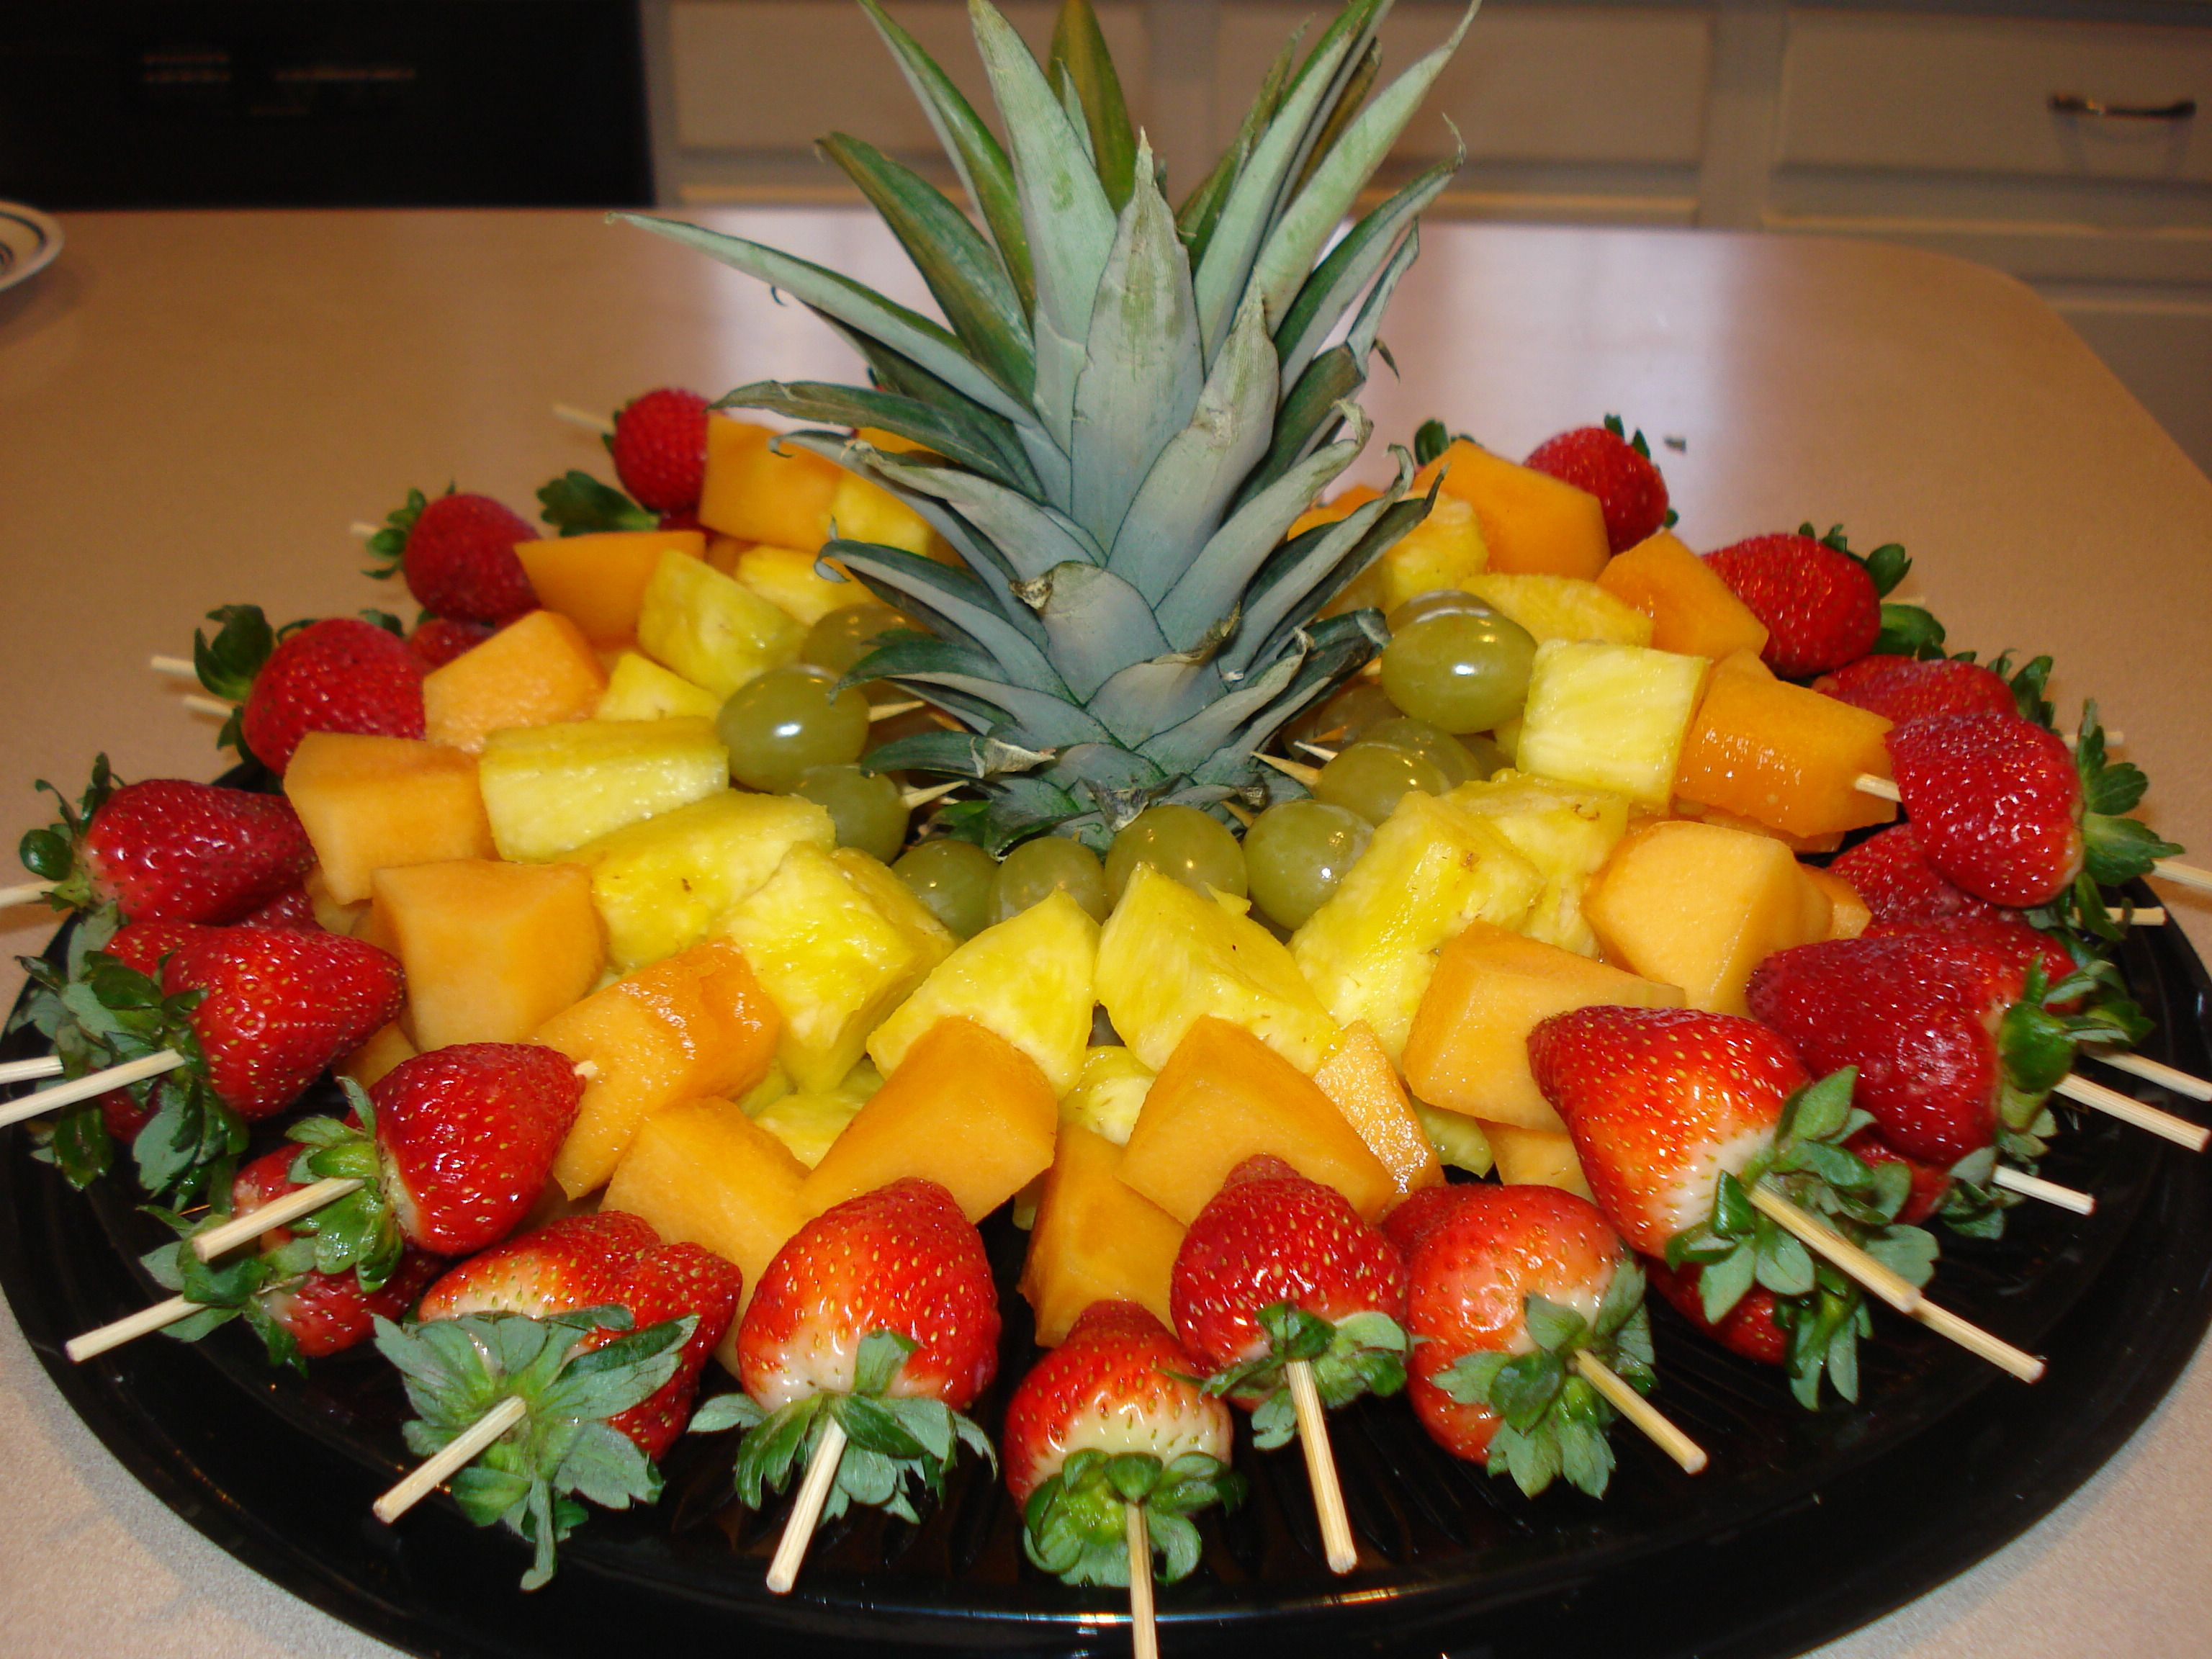 fruit skewers for a party cut top off of pineapple to stabilize the skewers while traveling to. Black Bedroom Furniture Sets. Home Design Ideas